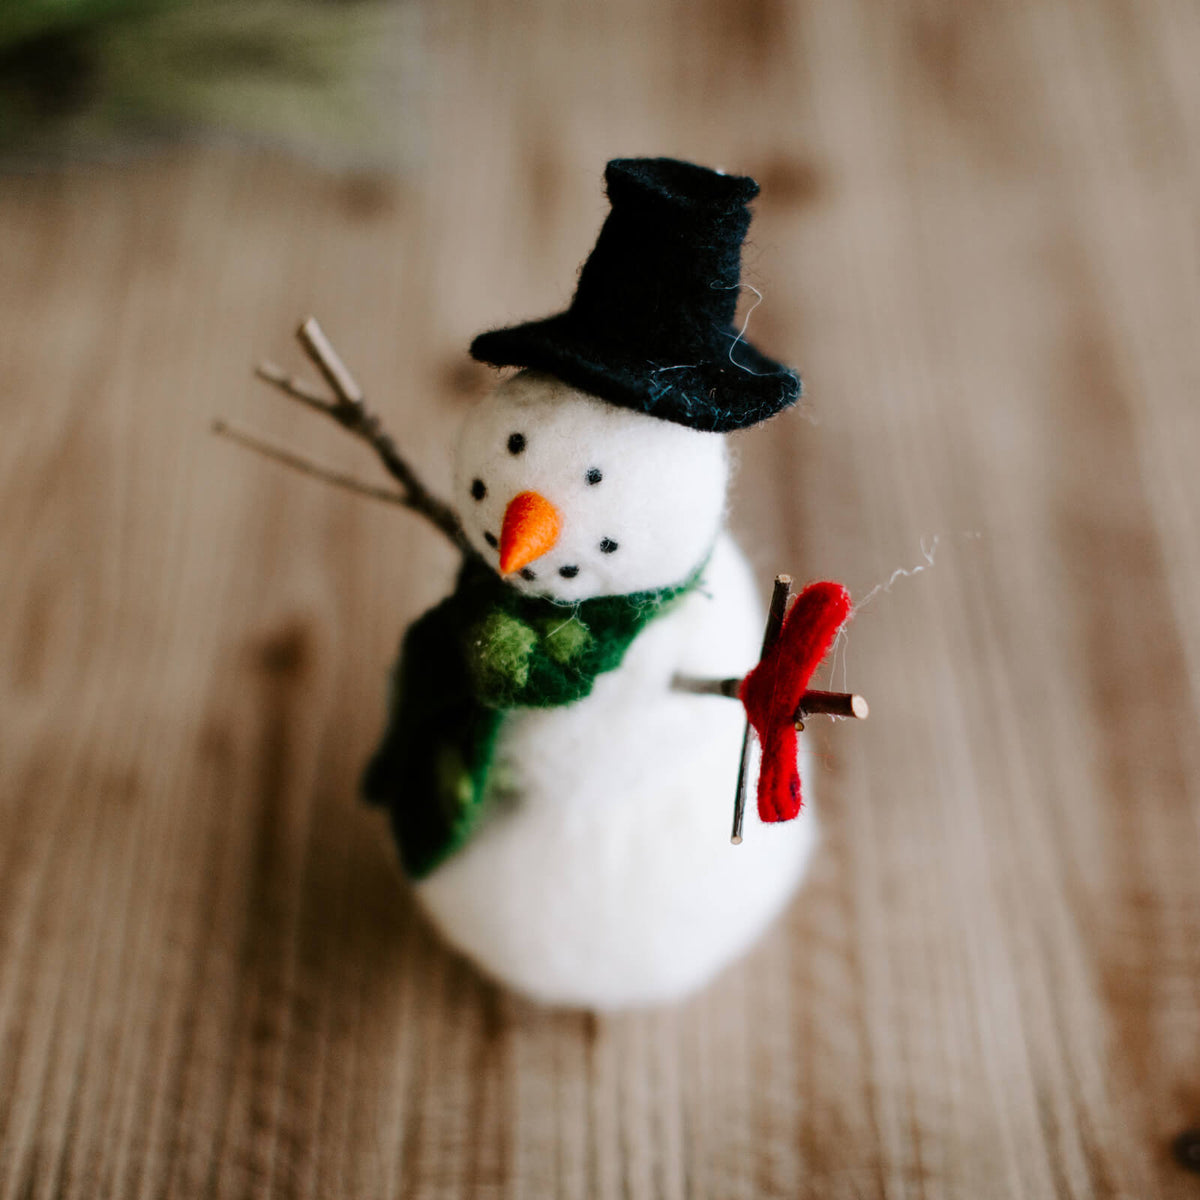 7 and half inch tall wool snowman with real twig arms, holding a red wool heart and wearing a green scarf and black hat, resting on a table with Christmas decor